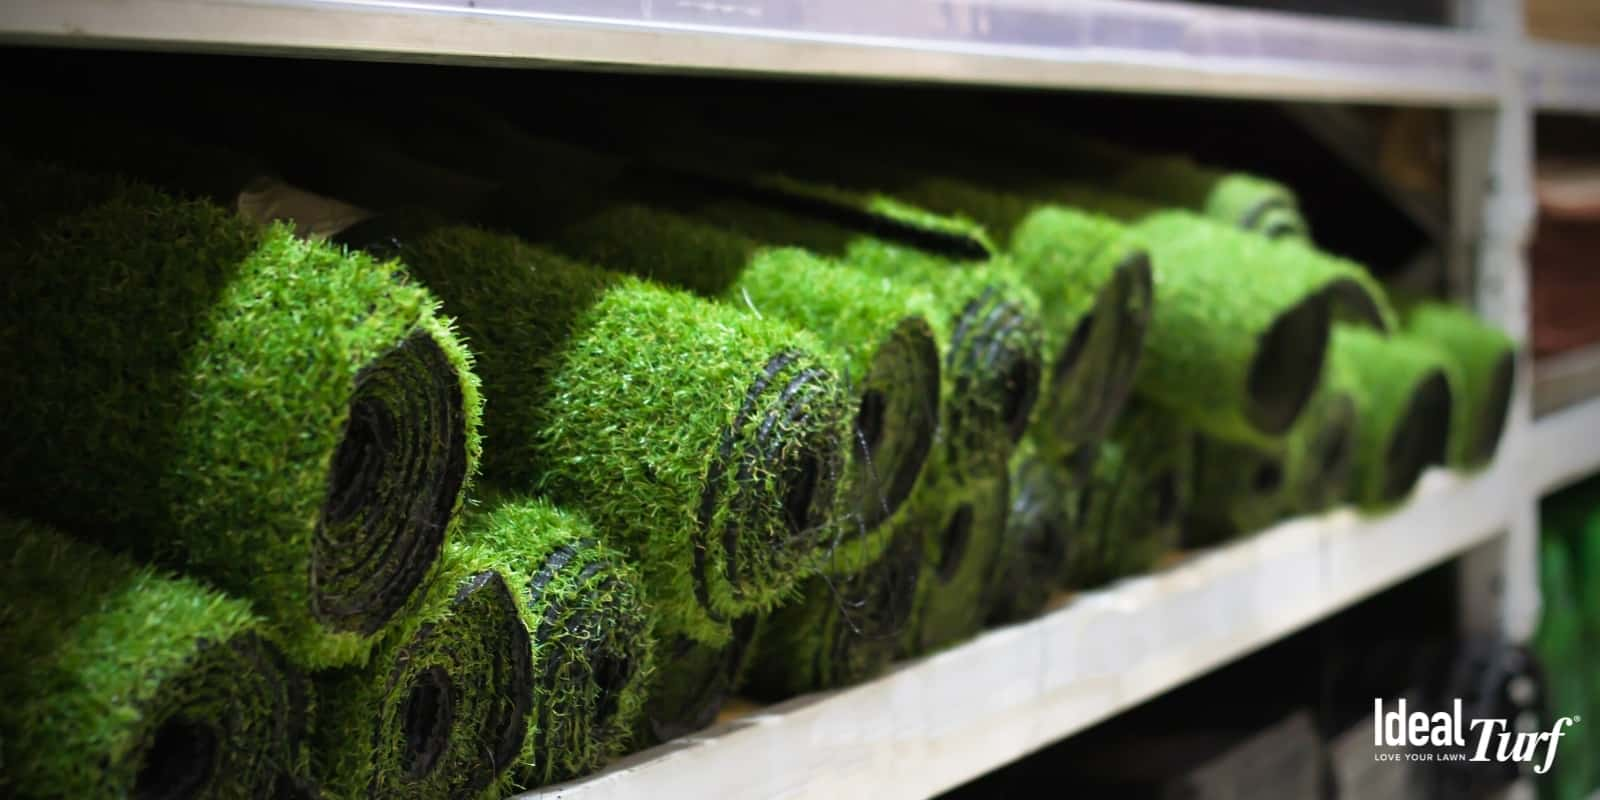 Rolls of artificial grass sitting on shelves in a warehouse